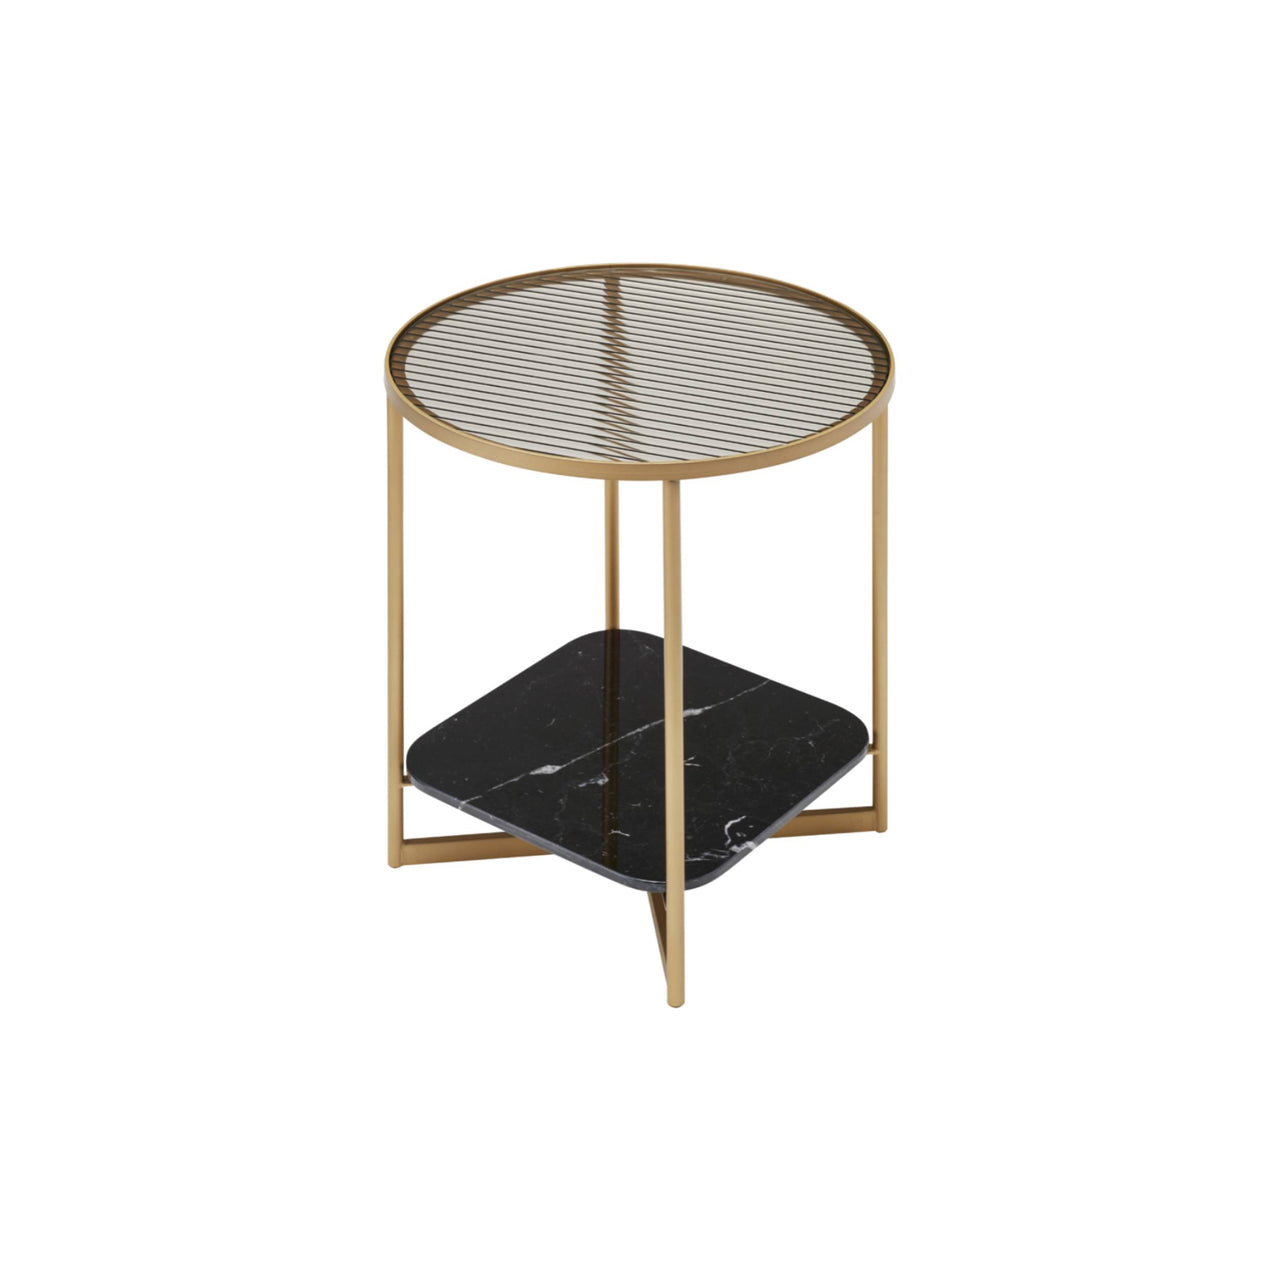 Mohana Side Table Small: Gold Chrome + Fluted Glass + Black Marble